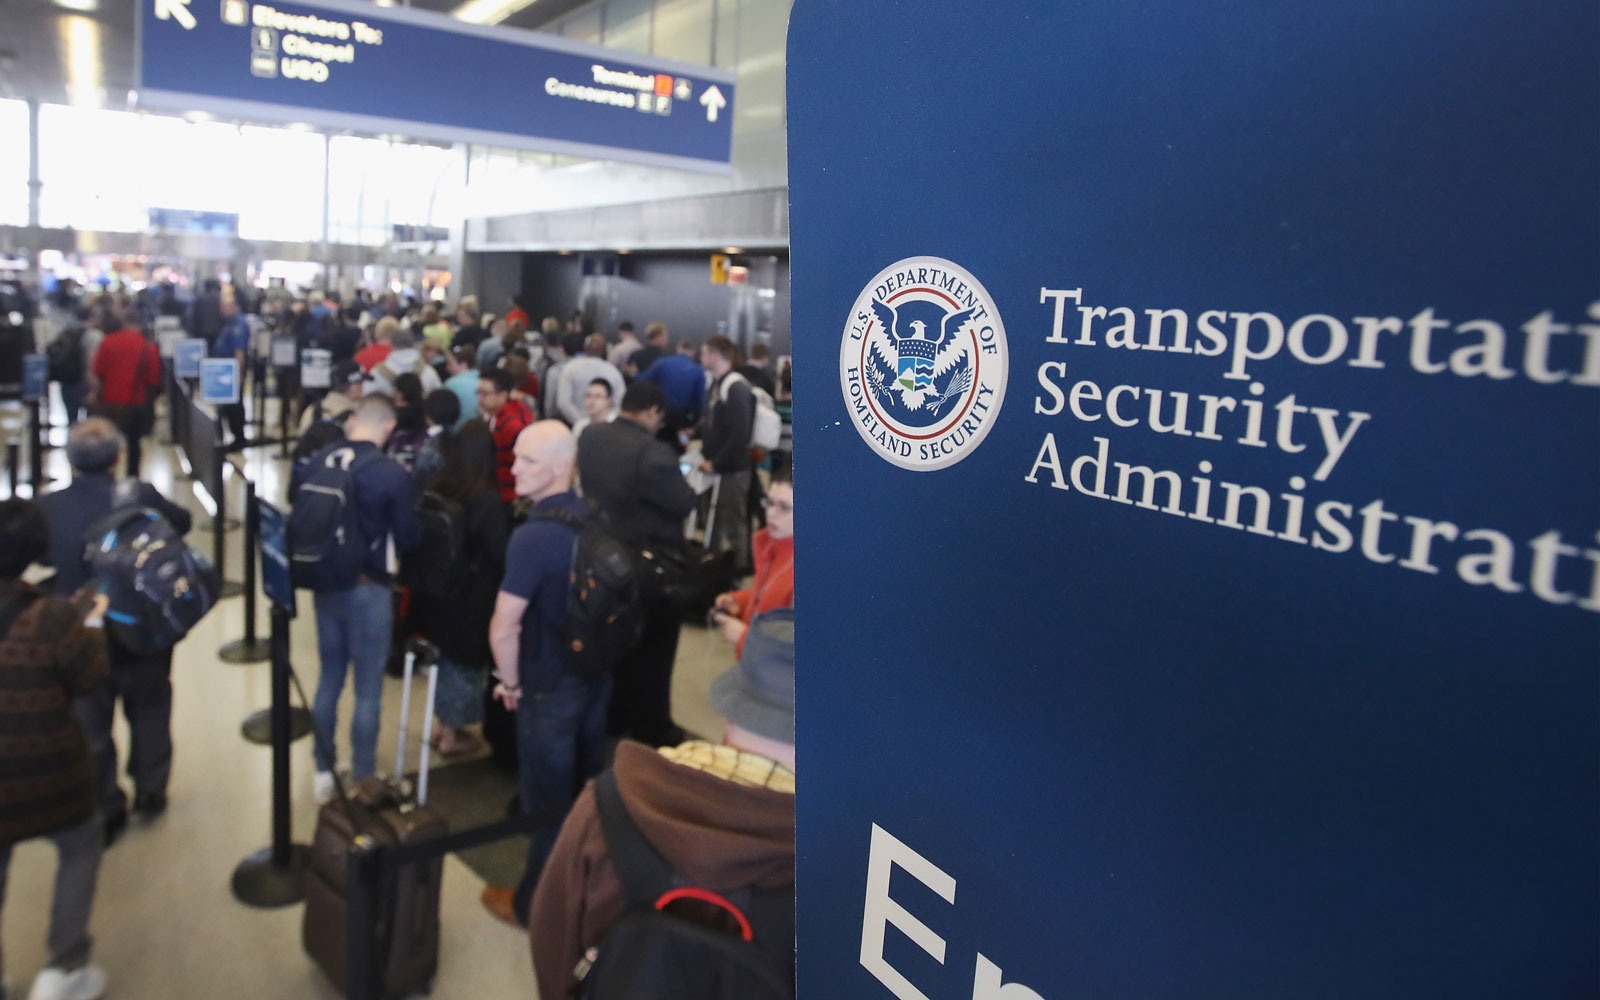 Report Reveals May 80 Much Tsa The Fail Screening Undercover Of Leisure Travel As Time